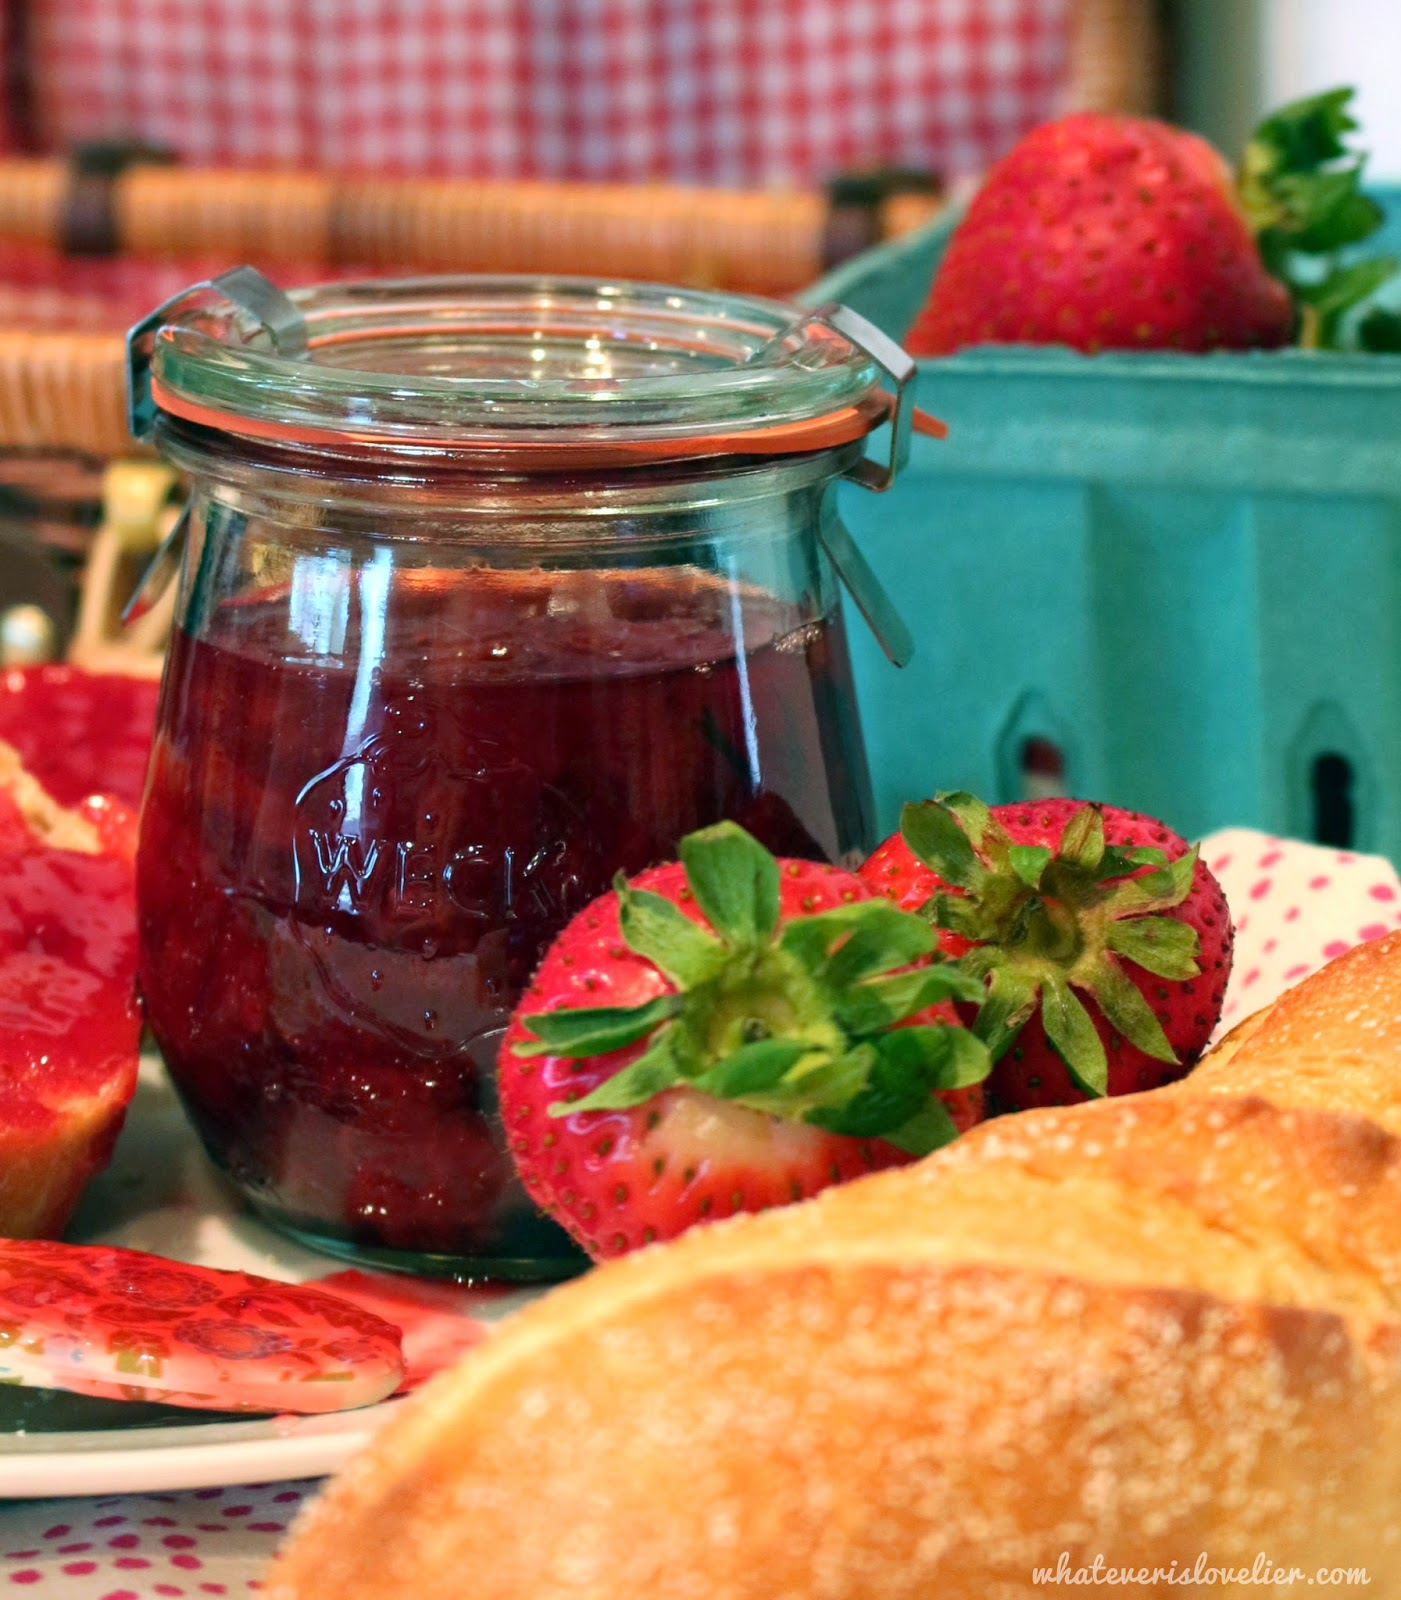 Recipe: Strawberry Basil Jam